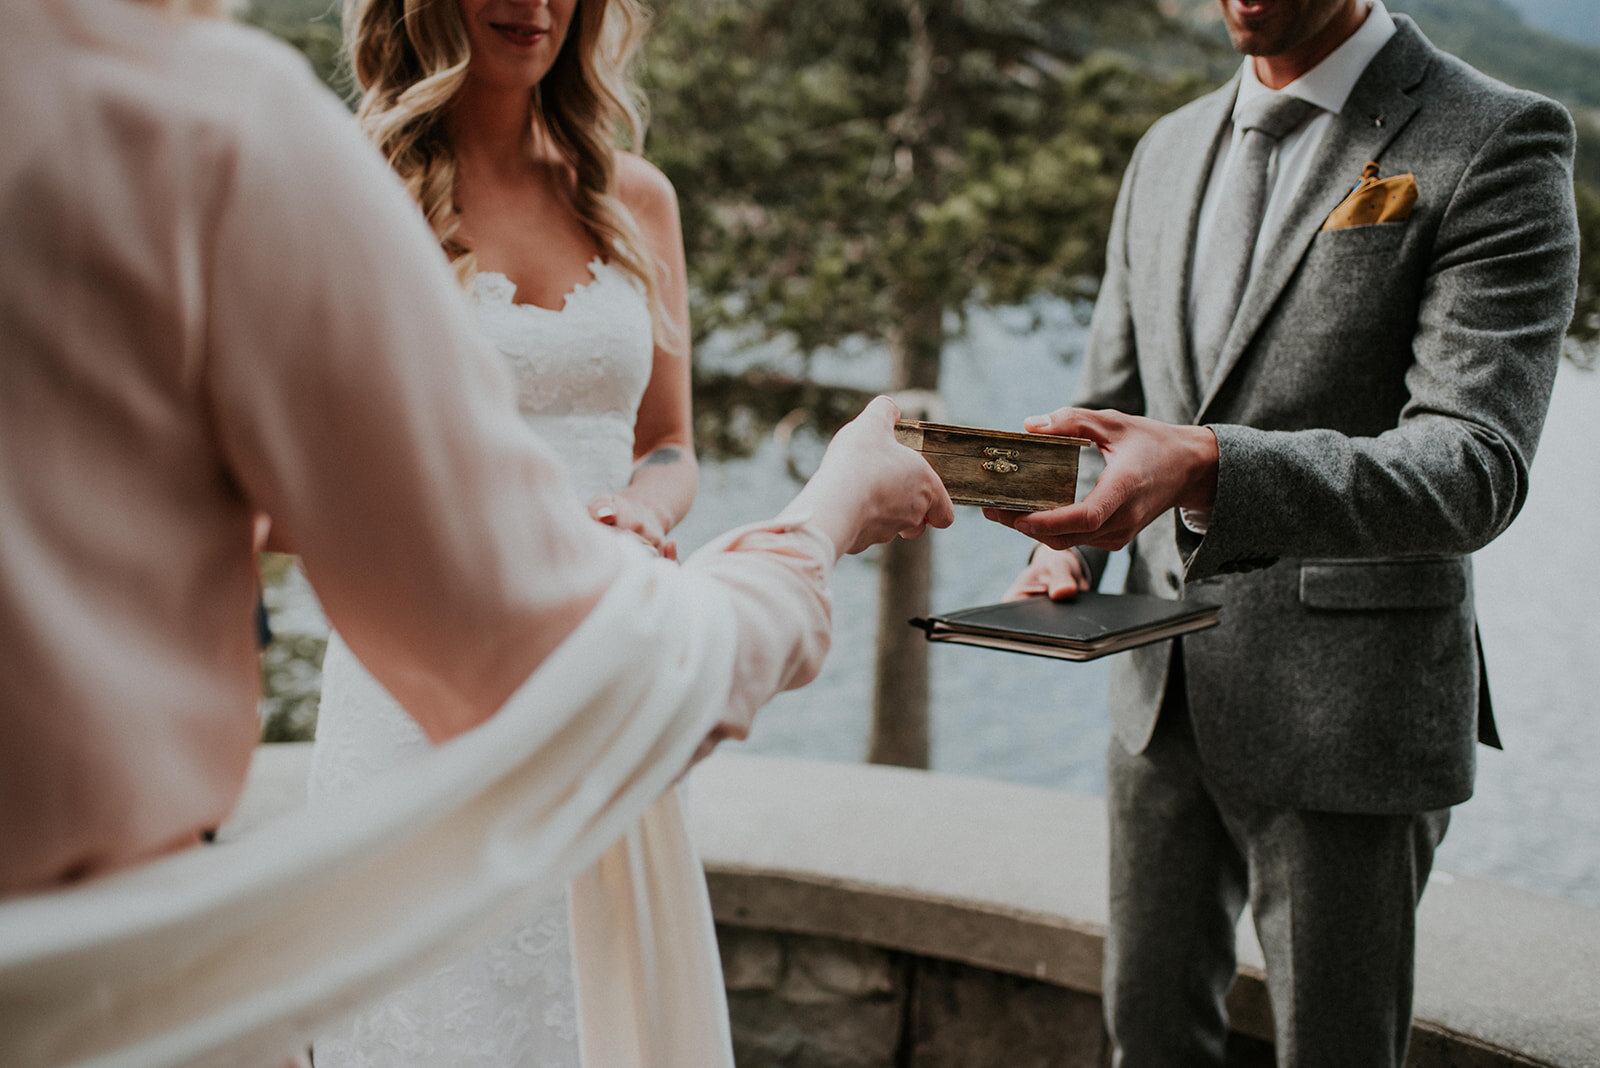 Whistler Wedding Officiant - Photo by Darby Magill